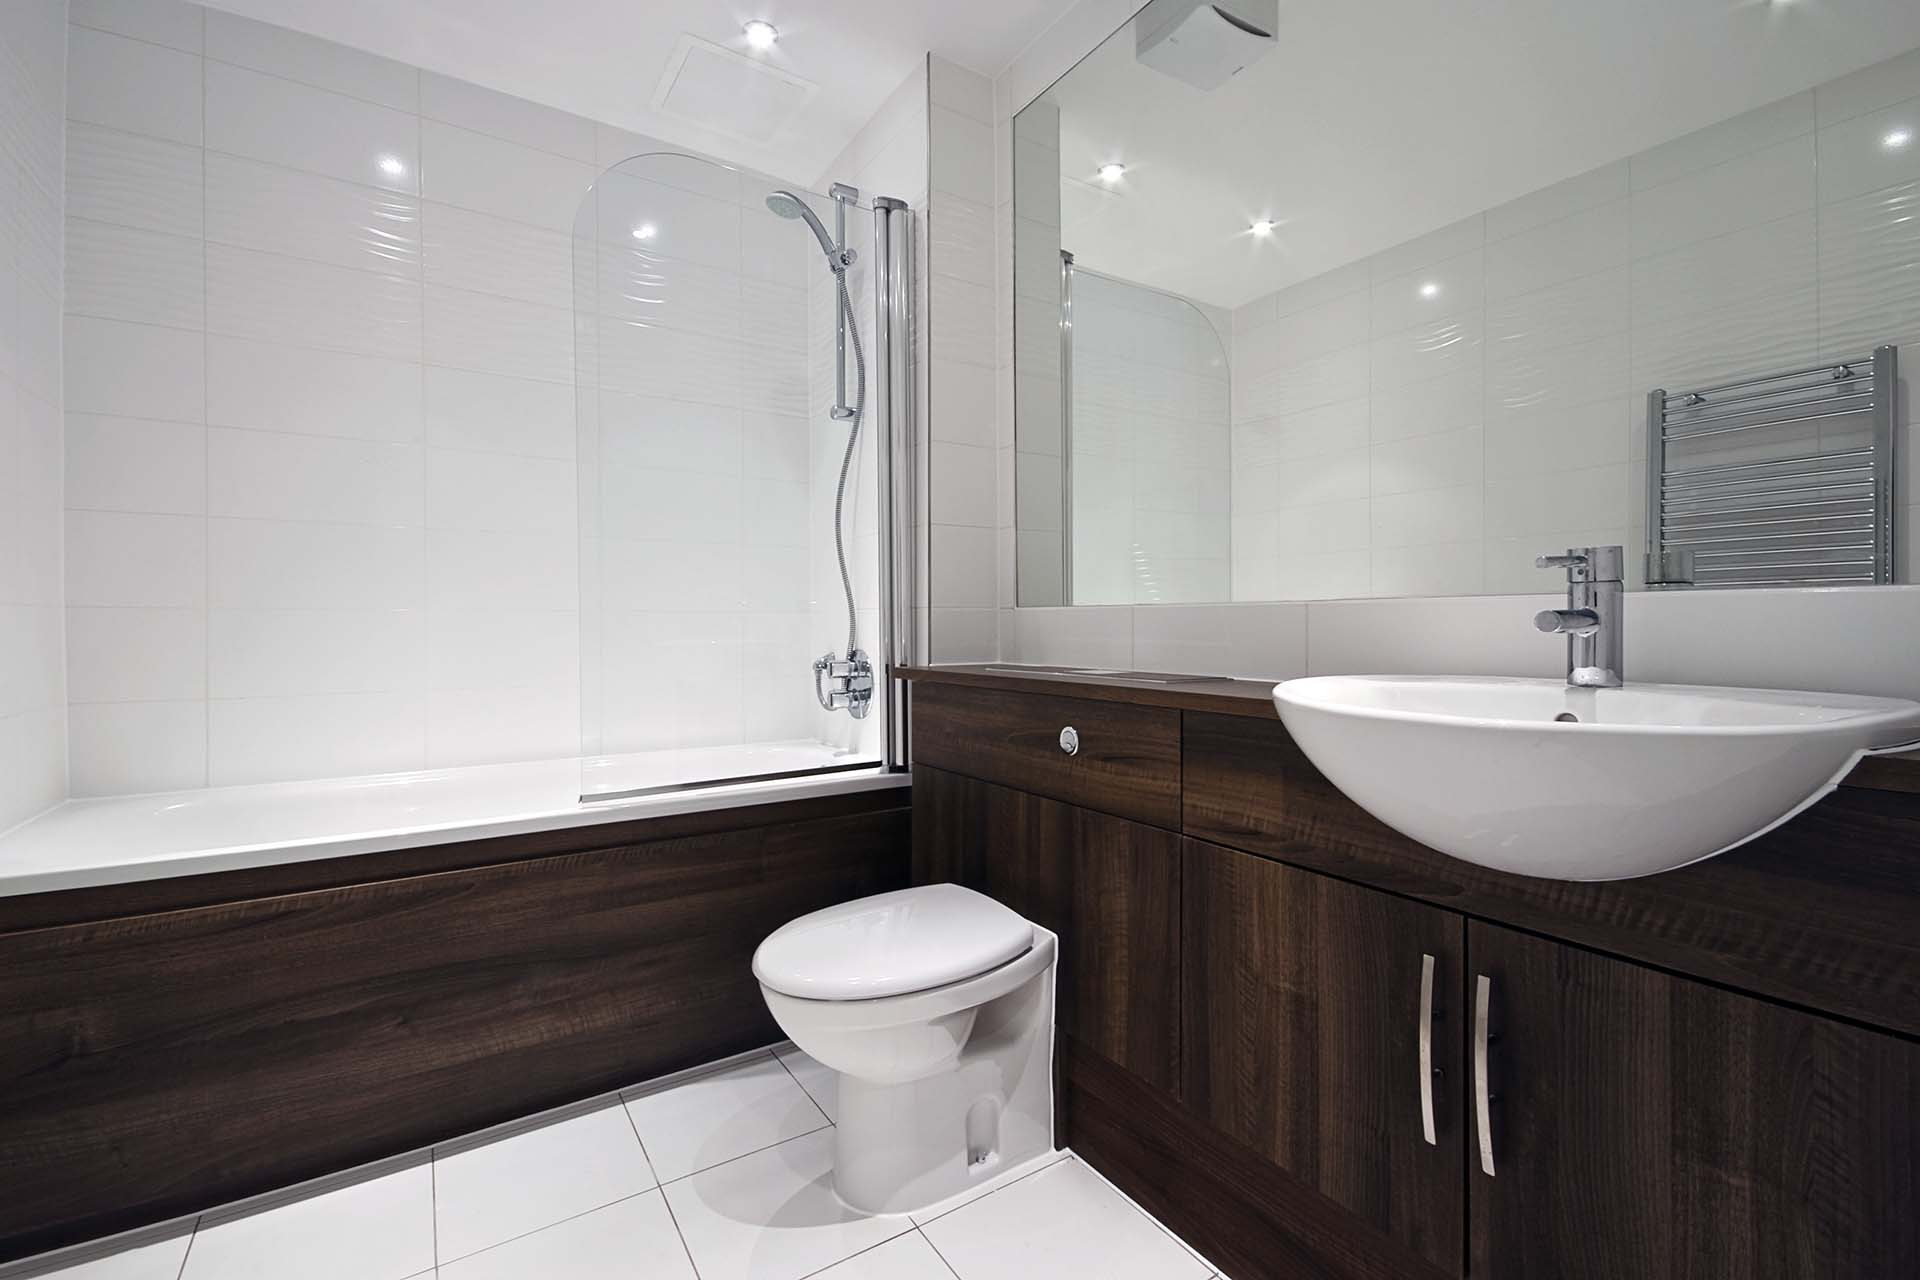 Fully fitted bathroom units to match the style of your bathroom